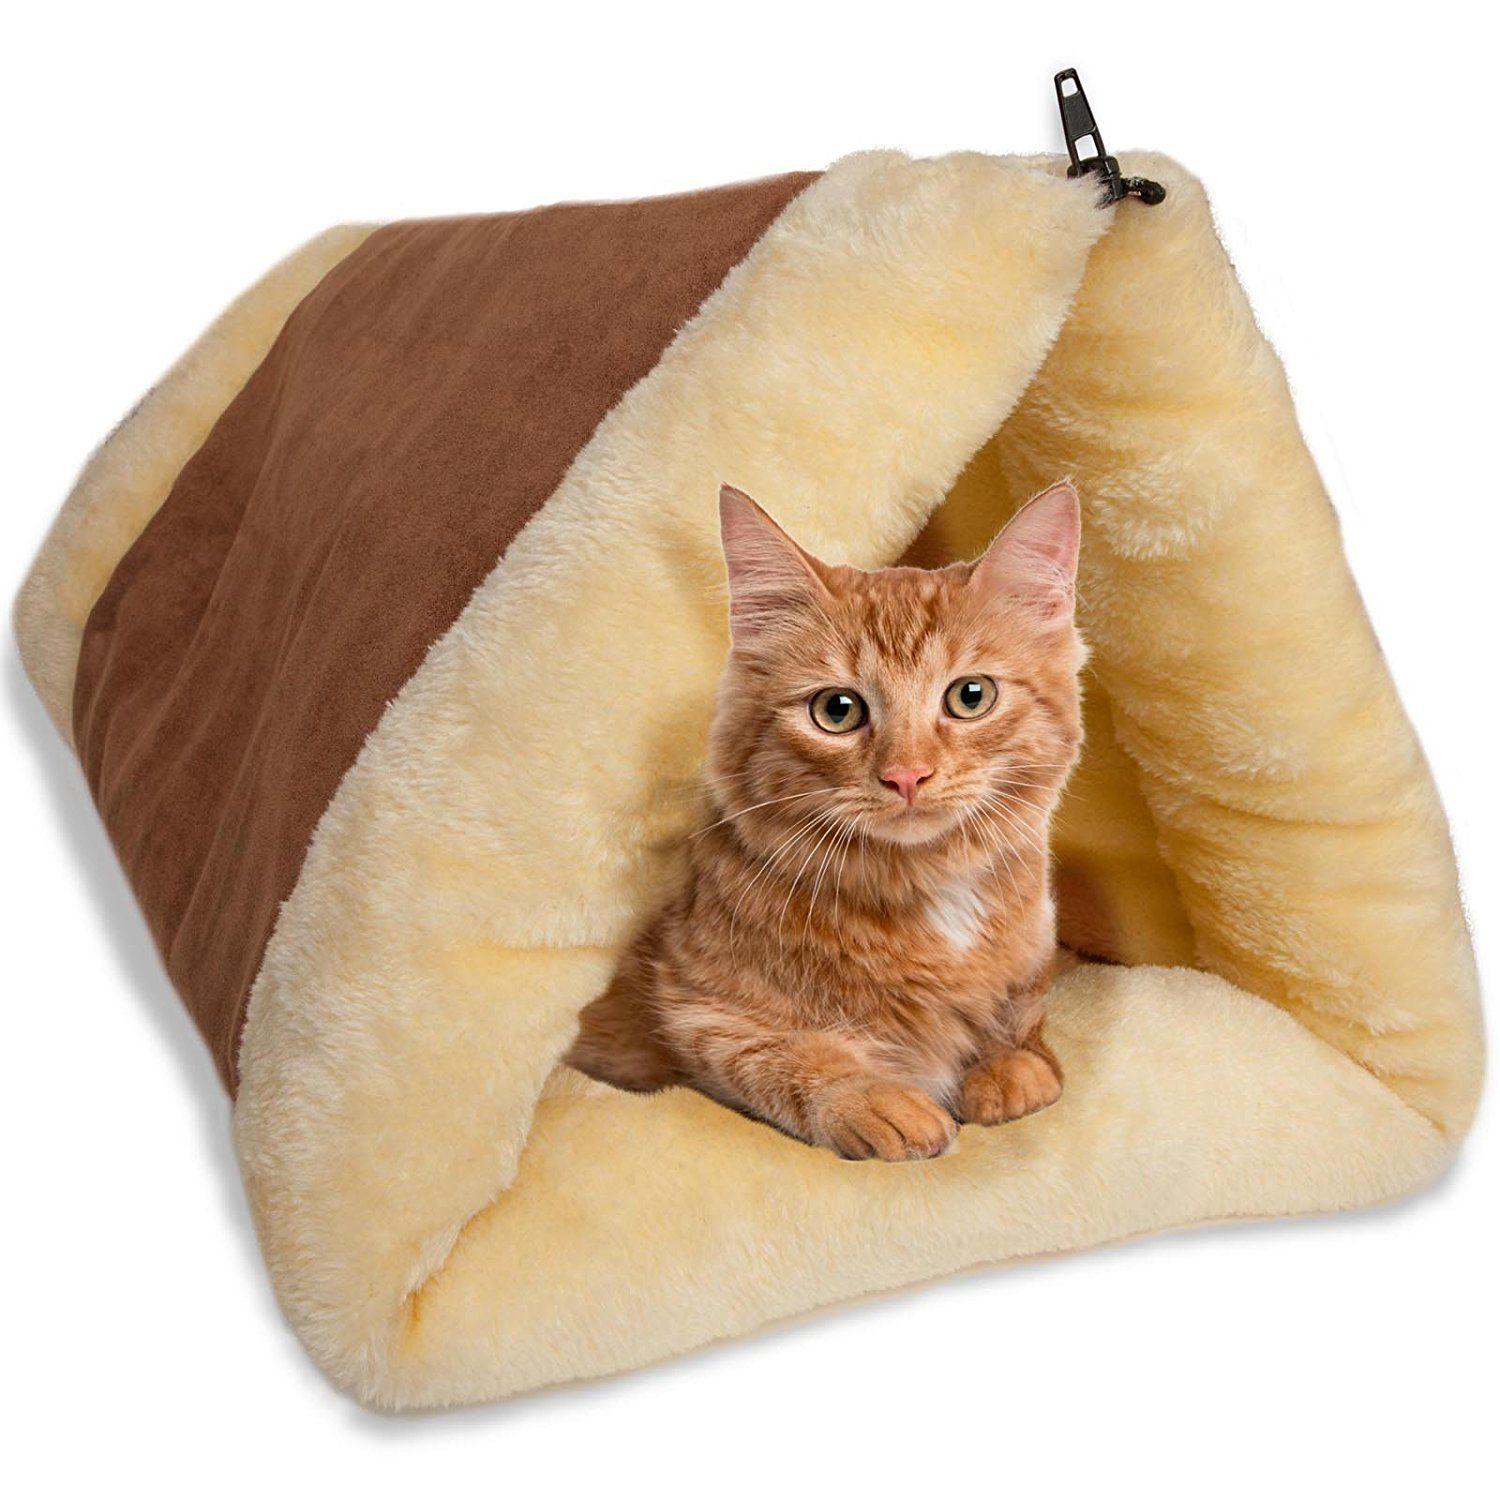 Cat Cat Bed Tunnel Fleece Kennel Crate Cage Shack House See This Awesome Image Cat Beds And Furniture Cat Bed Fleece Pet Bed Cat Tunnel